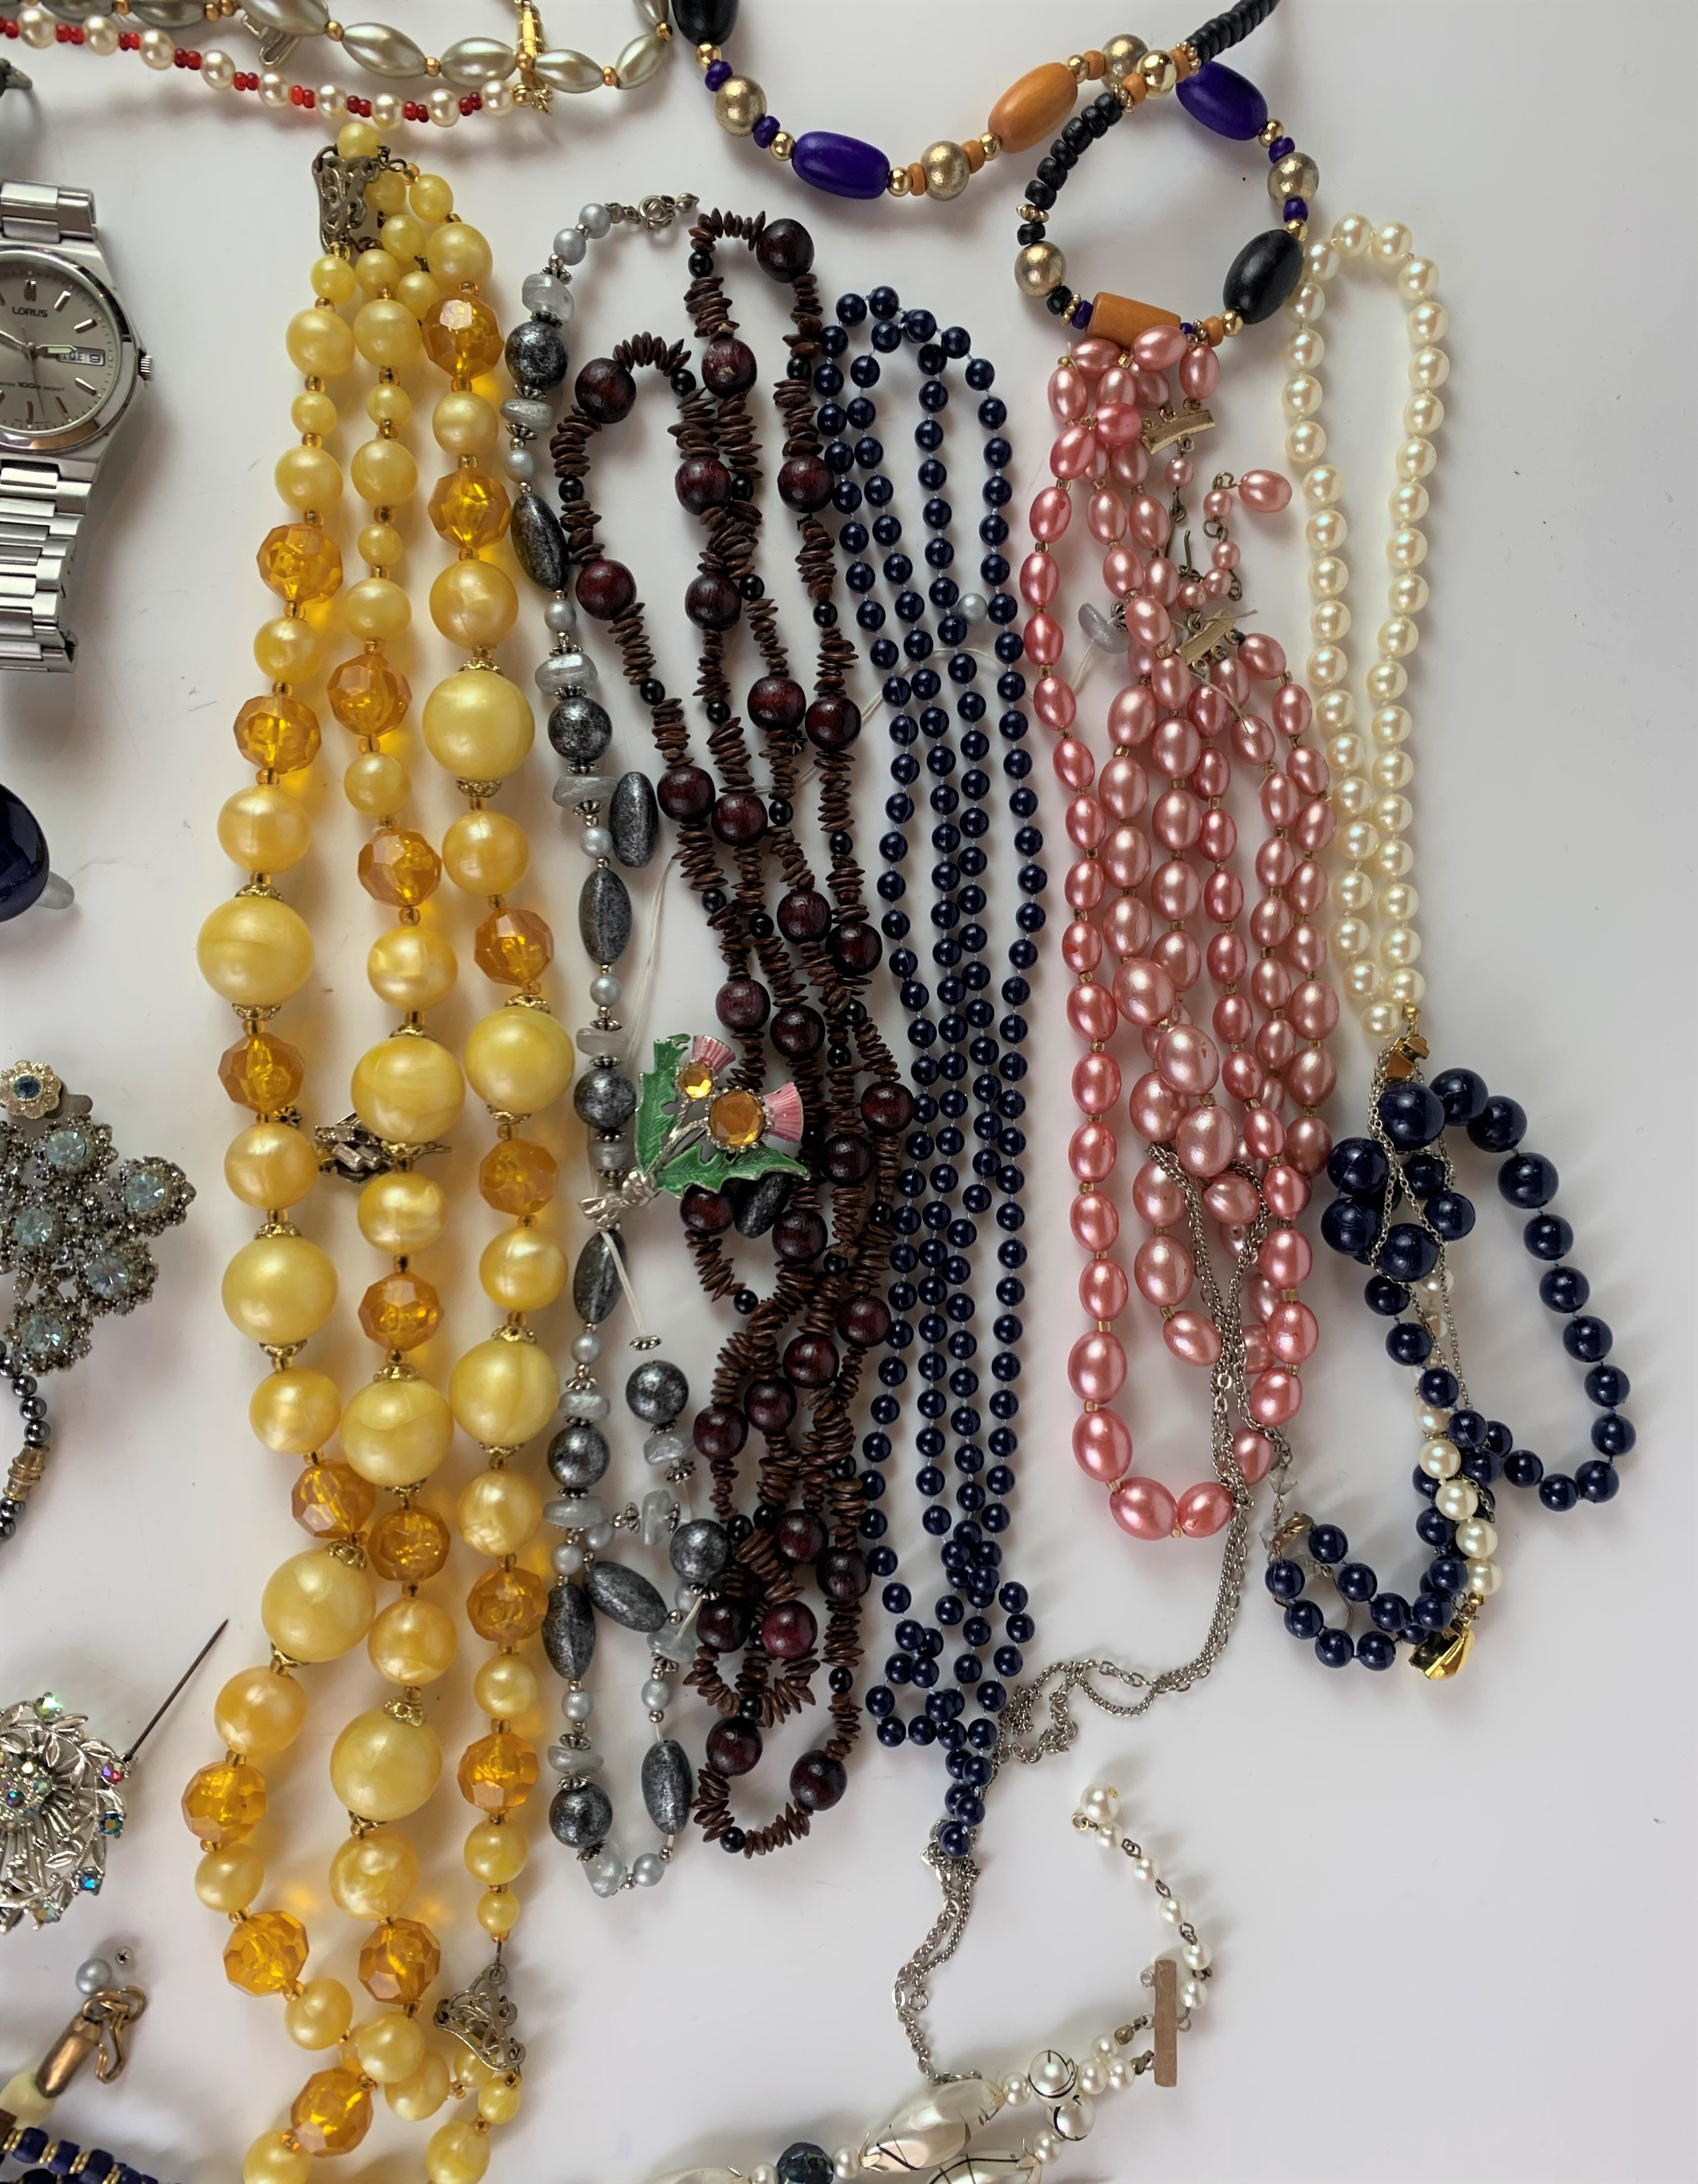 Large bag of assorted dress jewellery including necklaces, beads, earrings, brooches etc. - Image 6 of 8